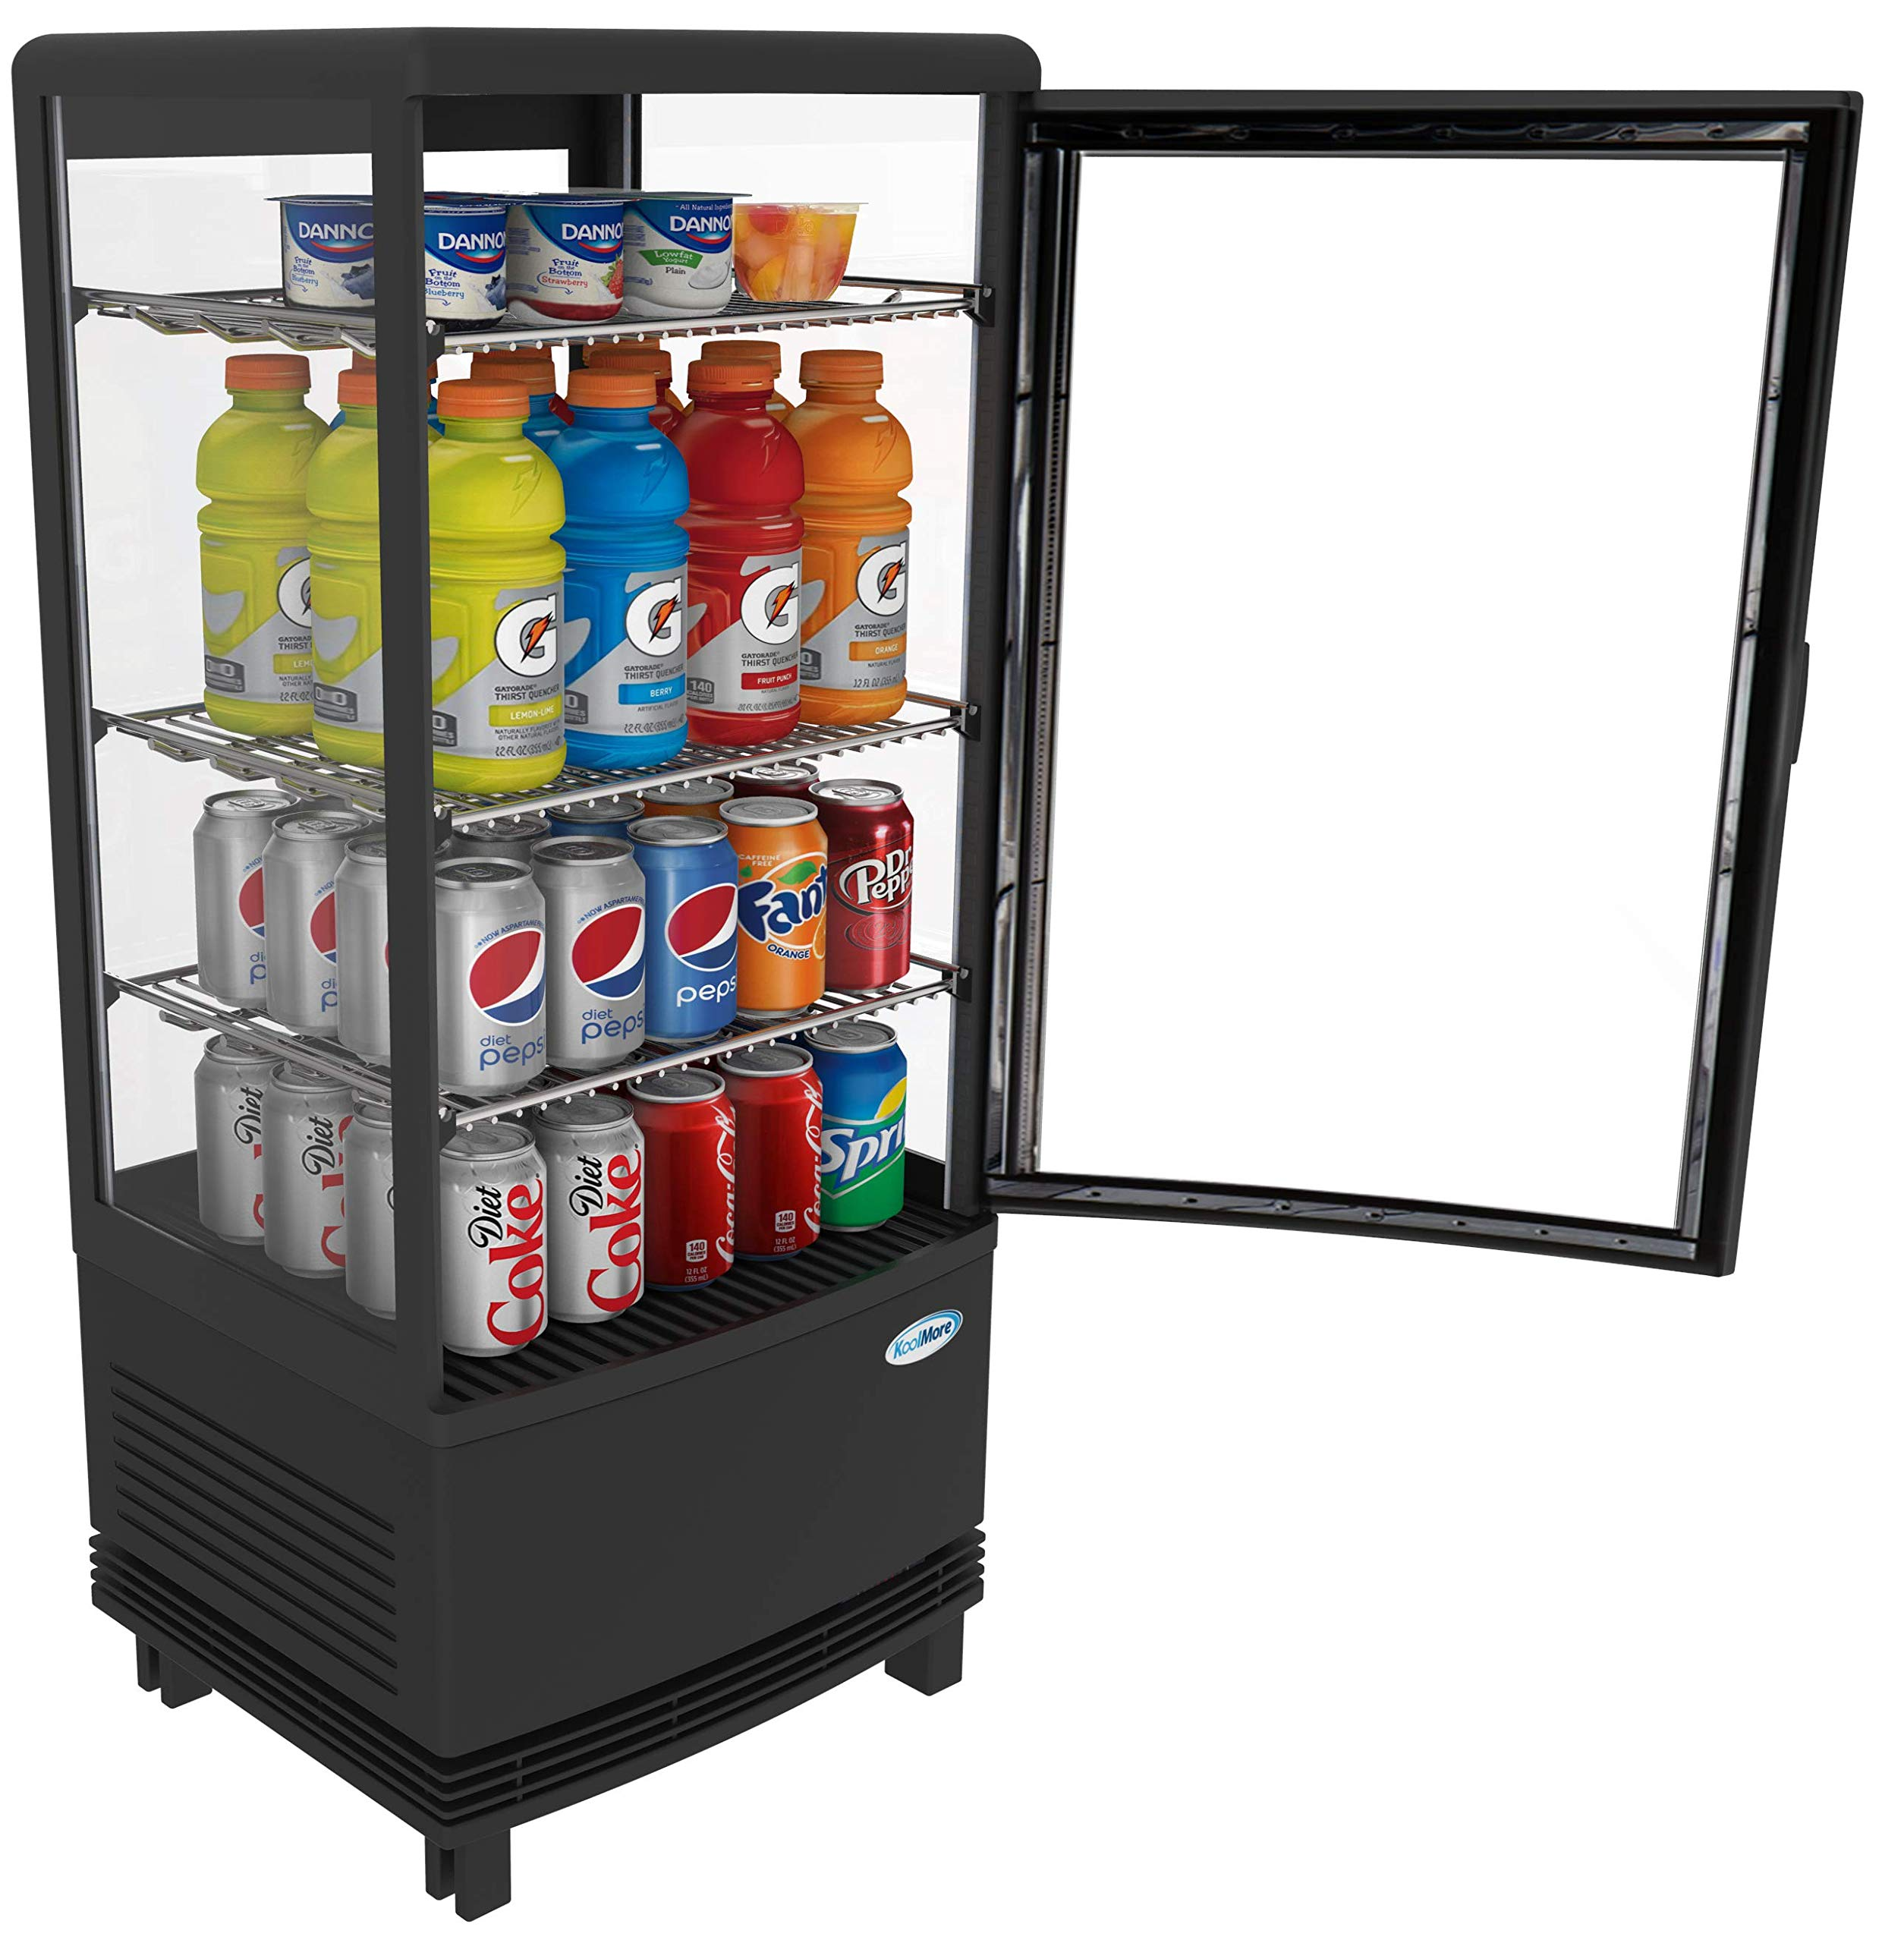 KoolMore Countertop Refrigerator Display Case Commercial Beverage Cooler with LED Lighting - 3 cu. ft Capacity by KoolMore (Image #4)